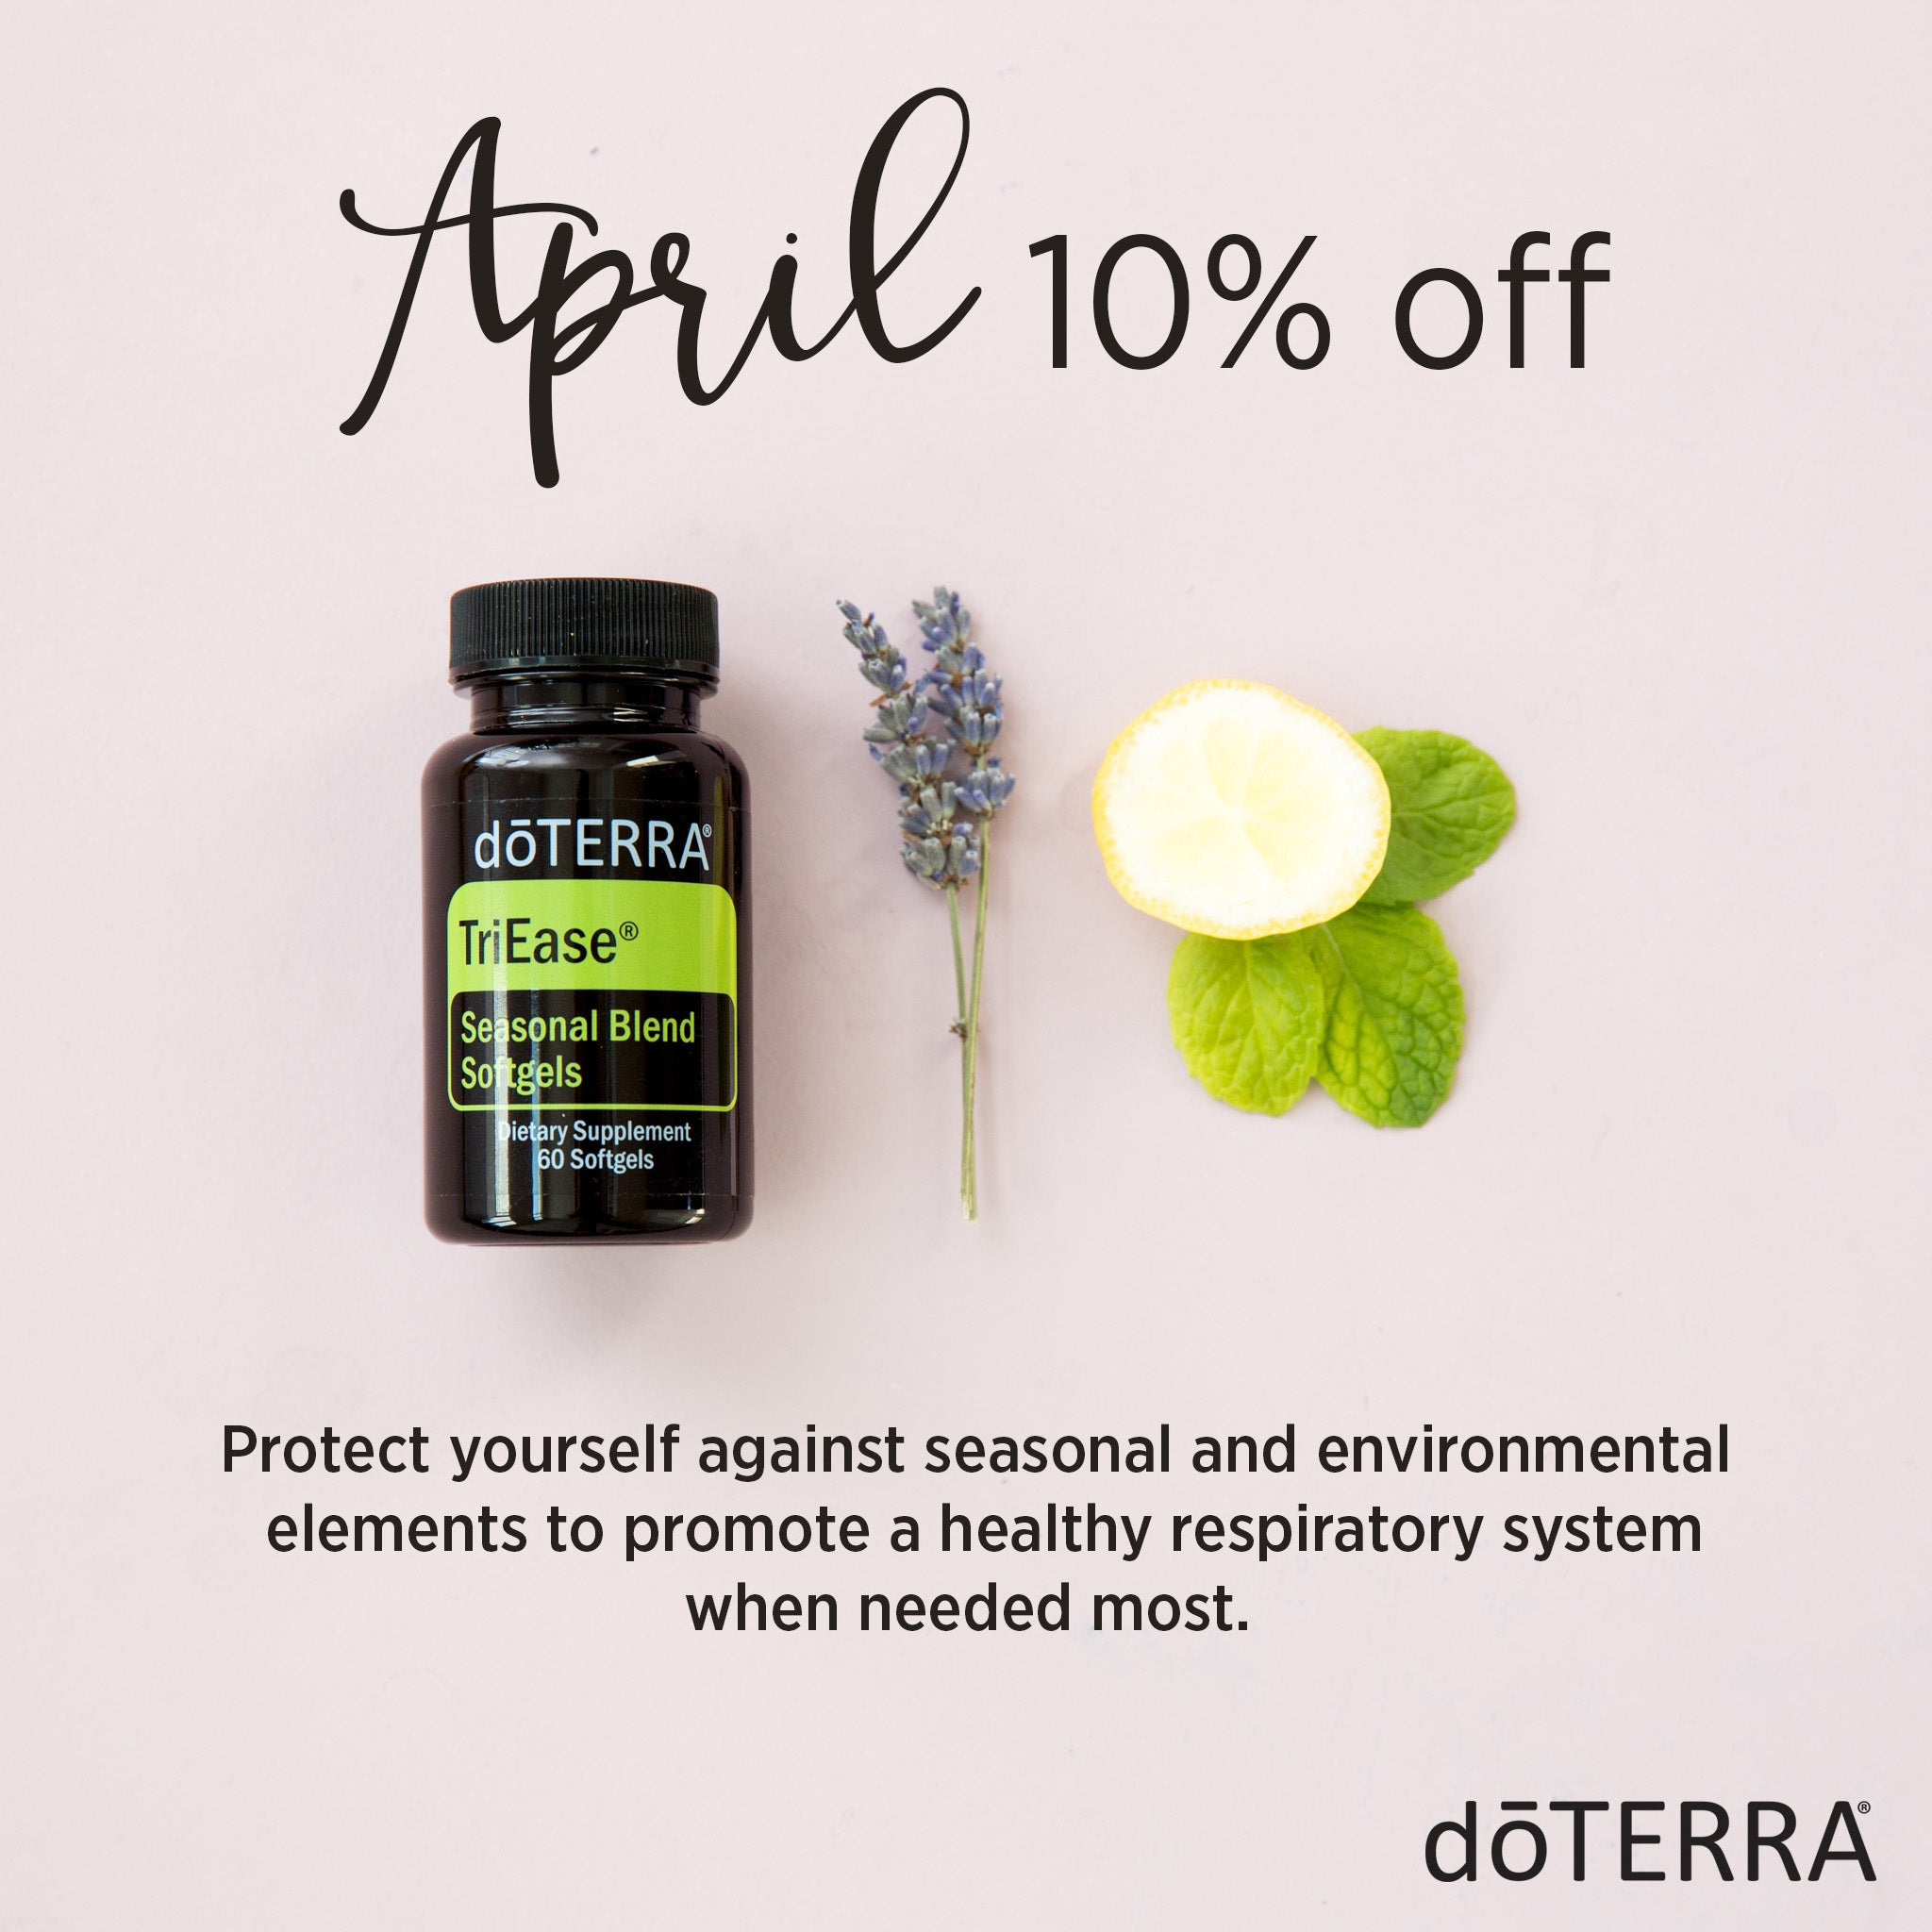 doTERRA TriEase on sale April 2018